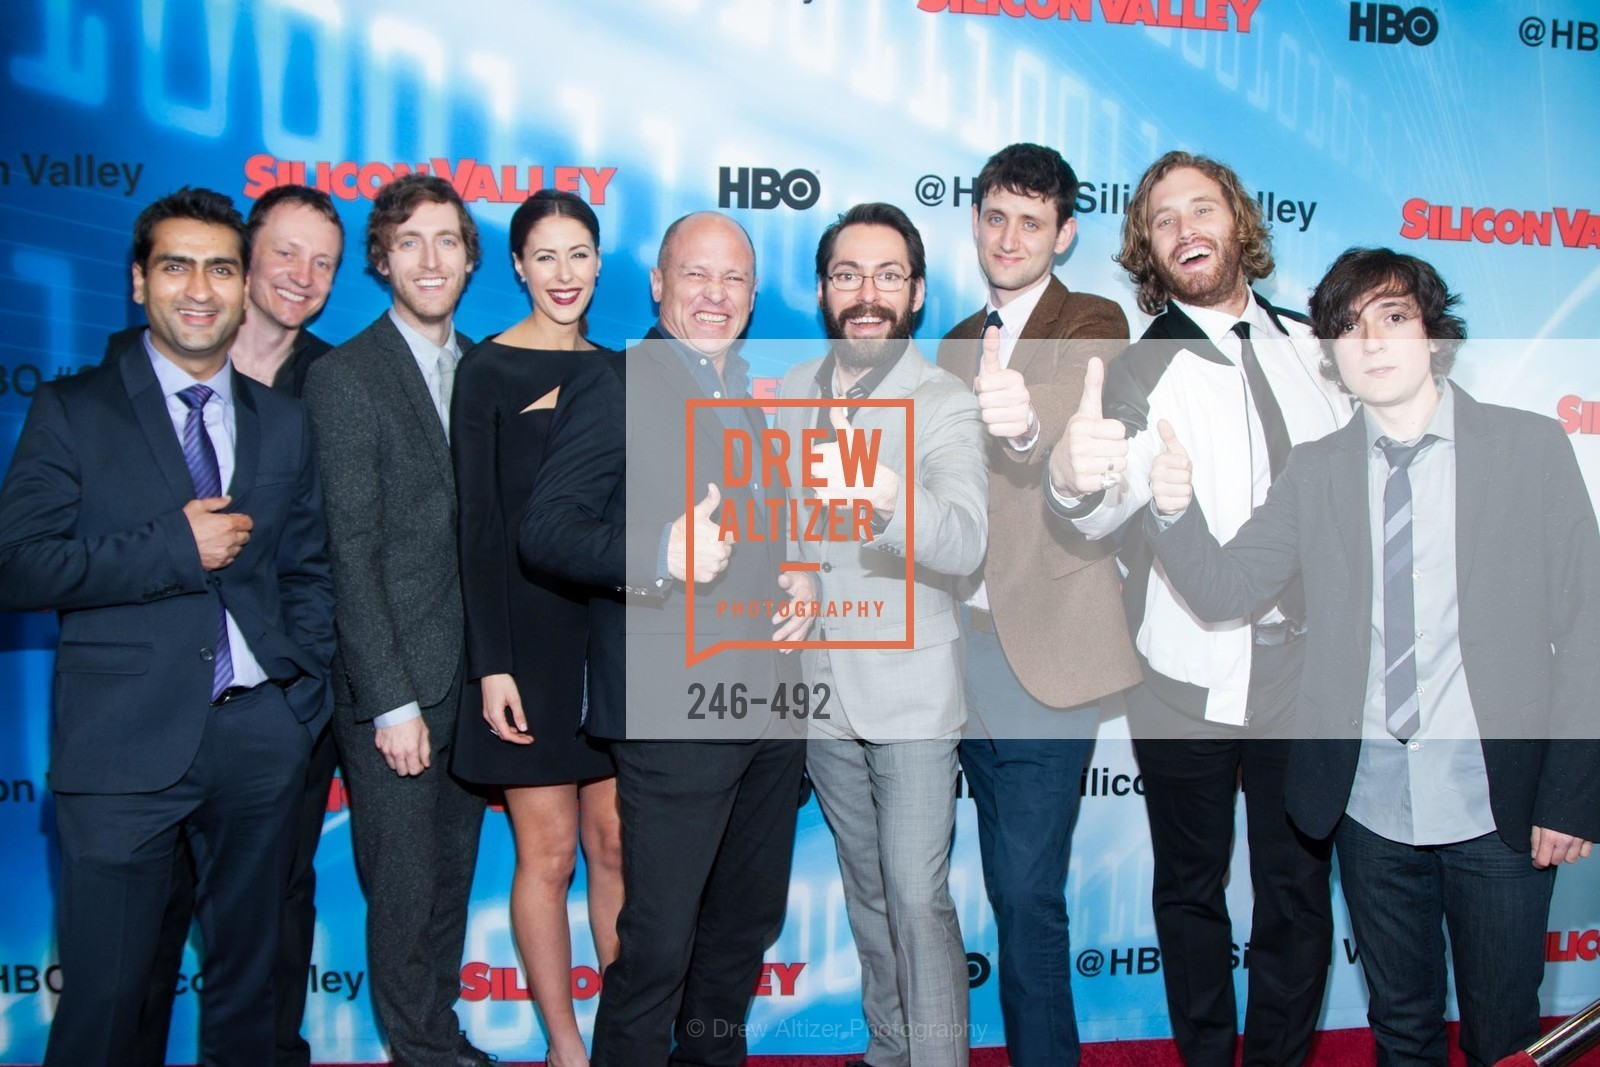 Kumail Nanjiani, Alec Berg, Thomas Middleditch, Amanda Crew, Mike Judge, Martin Starr, Zach Woods, TJ Miller, Josh Brener, HBO Original Series 'Silicon Valley' Bay Area Premiere, US. US, April 2nd, 2014,Drew Altizer, Drew Altizer Photography, full-service agency, private events, San Francisco photographer, photographer california